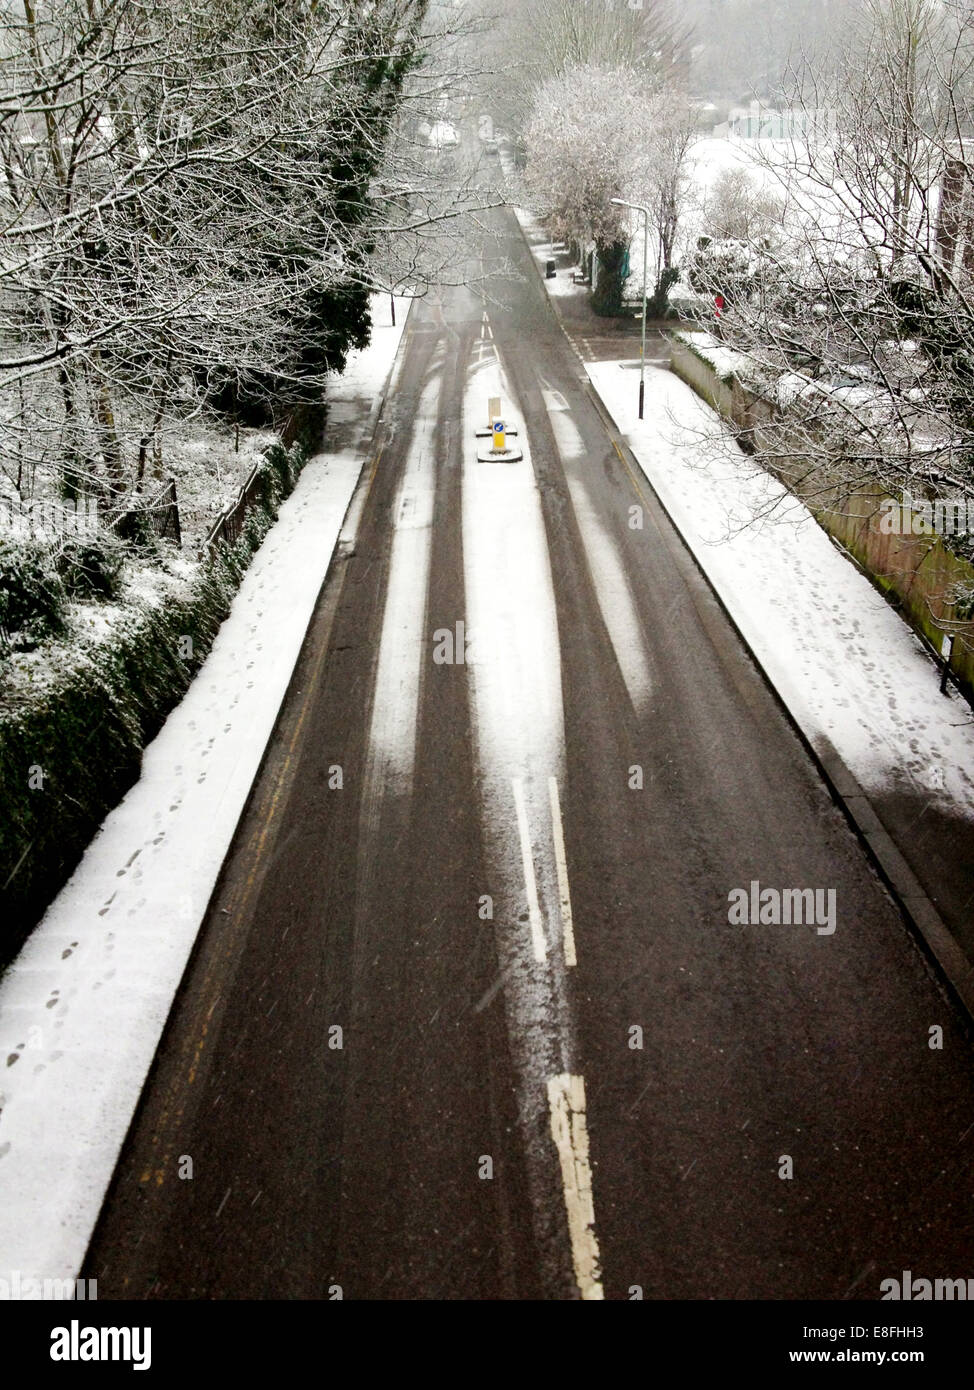 UK, London, London Borough of Haringey, Crouch End, Road covered in snow - Stock Image